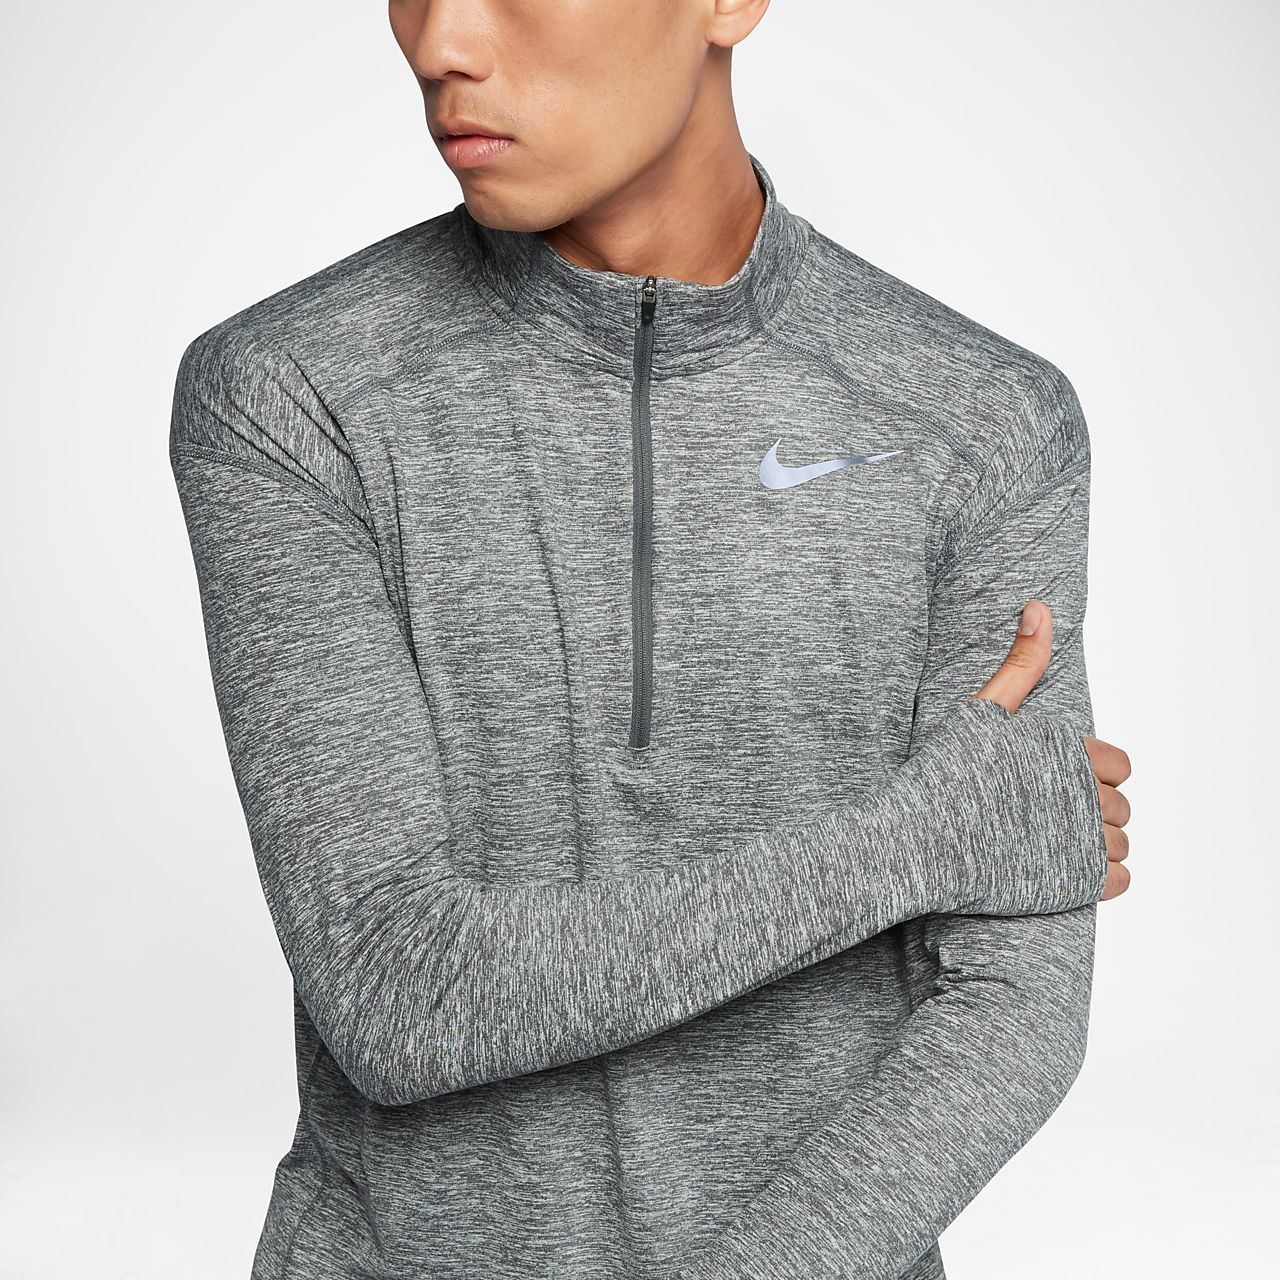 ae673772 Nike Dri-FIT Element Men's Long-Sleeve Half-Zip Running Top. Nike.com PT